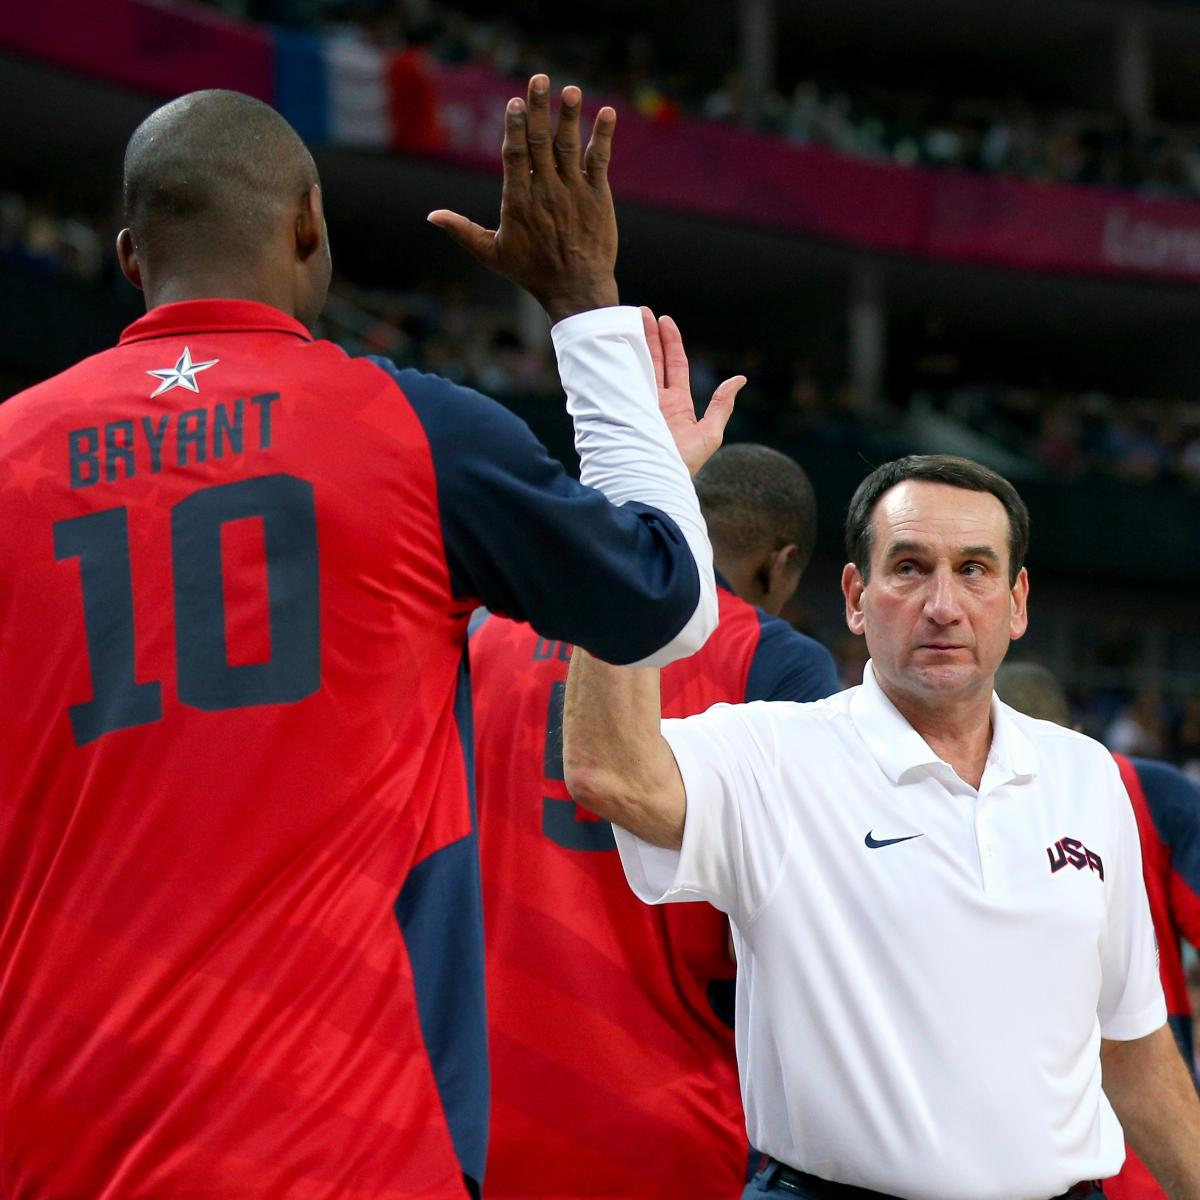 Mike Krzyzewski Comments on Kobe Bryant's Interest in Playing for Team USA